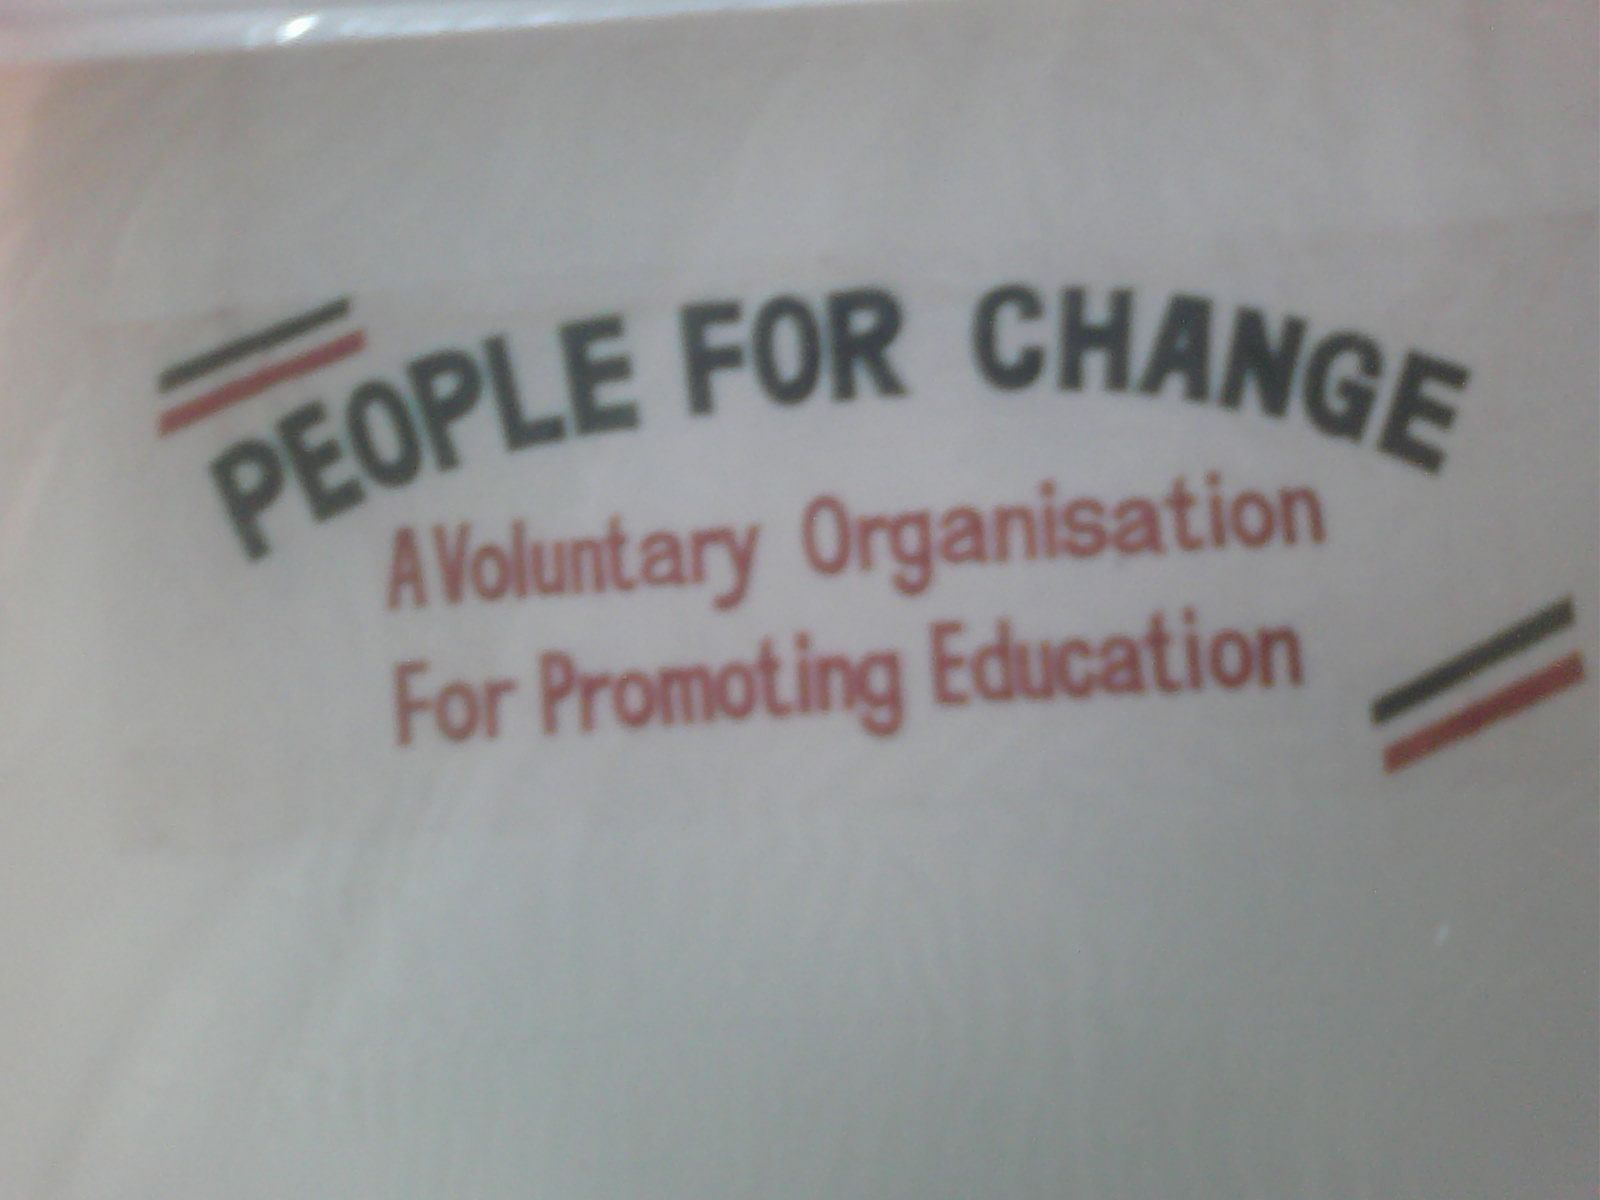 People for Change: Spreading Education